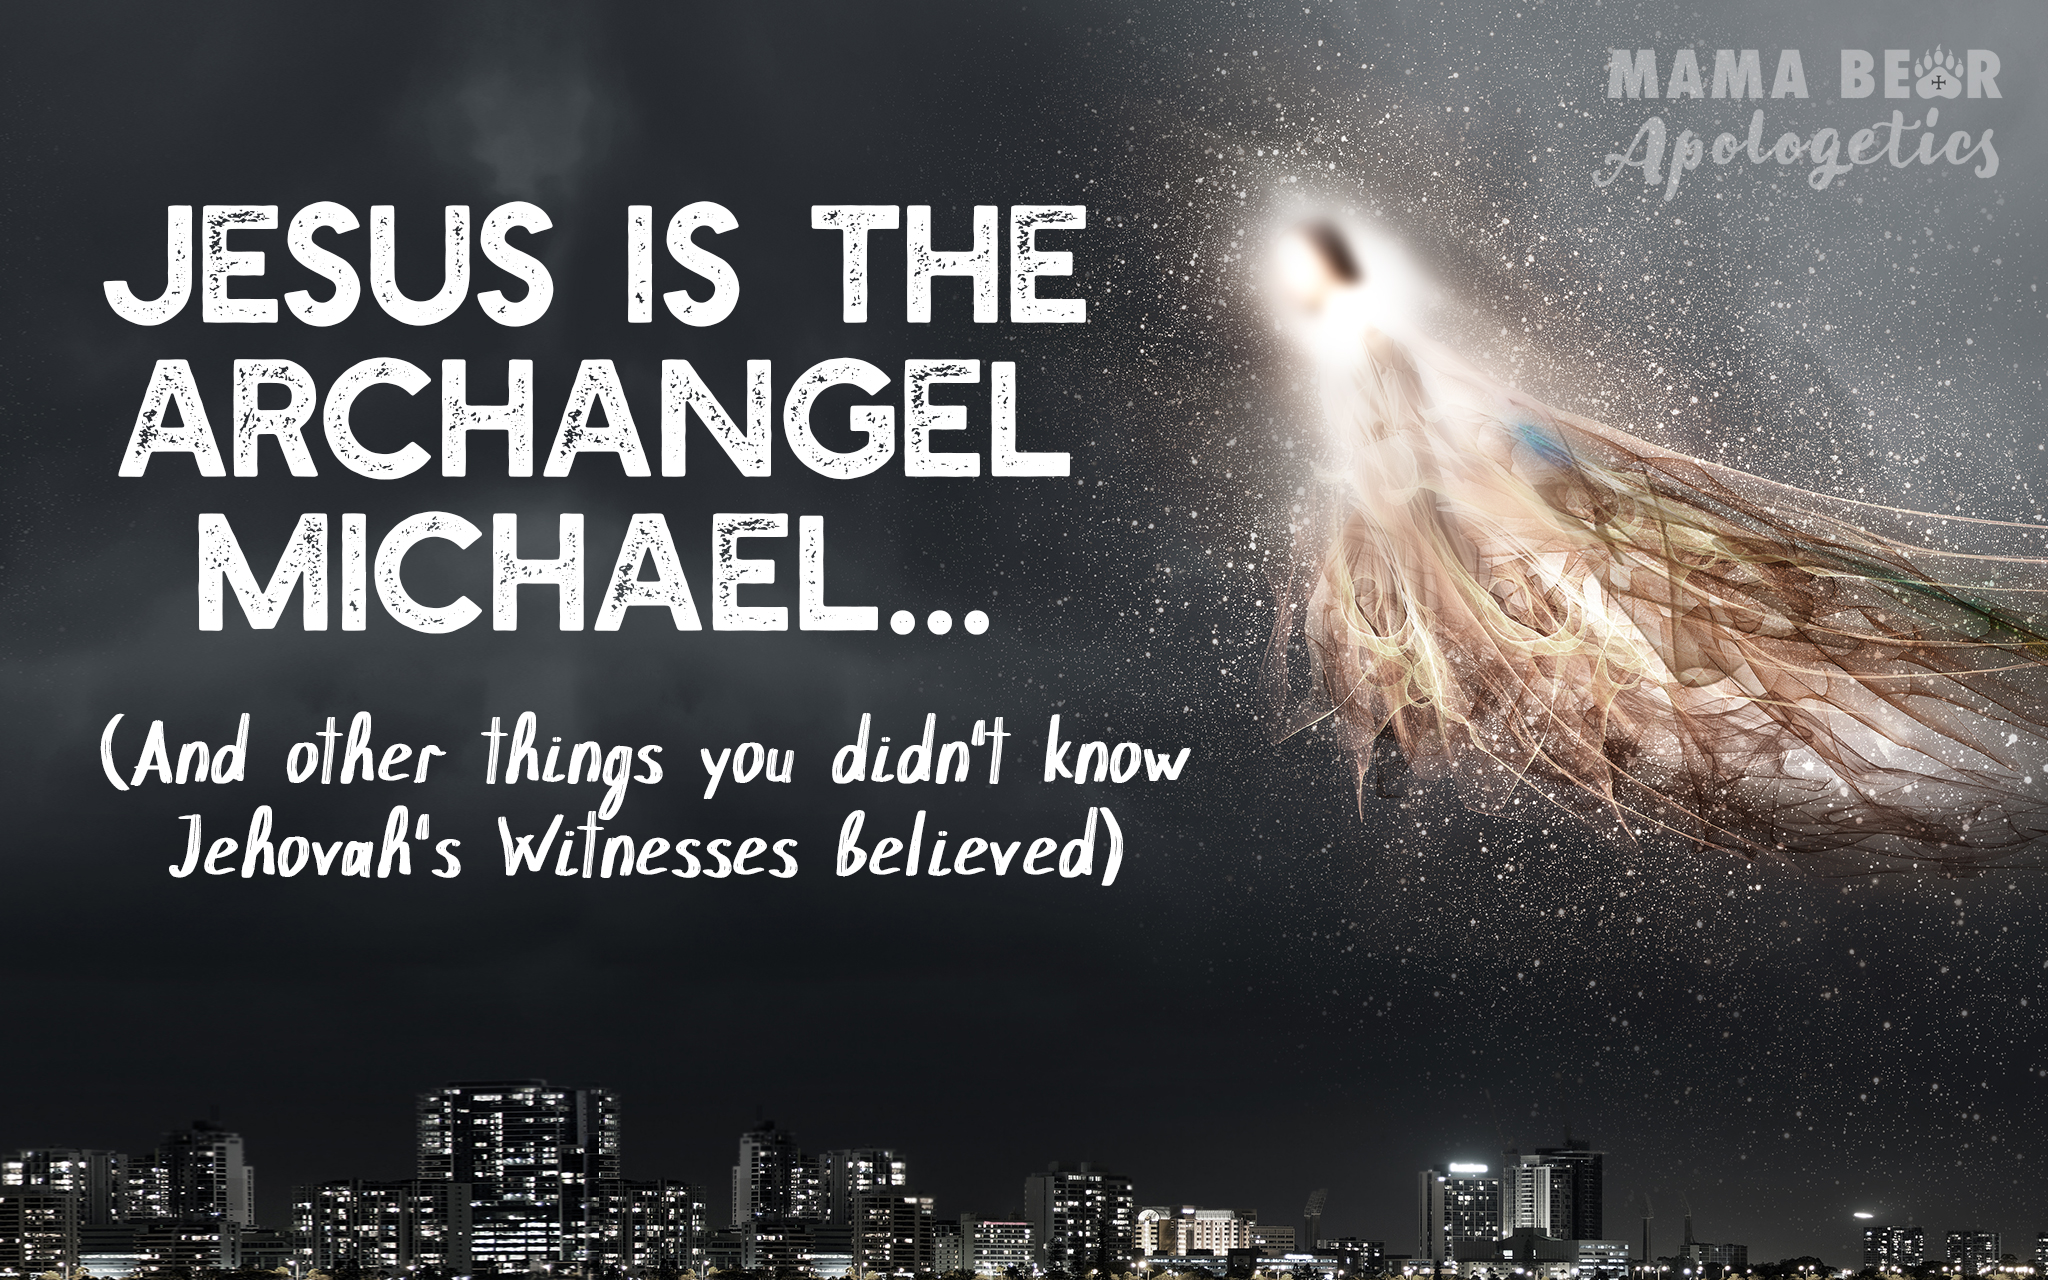 What do Jehovah's Witnesses believe? - Mama Bear Apologetics